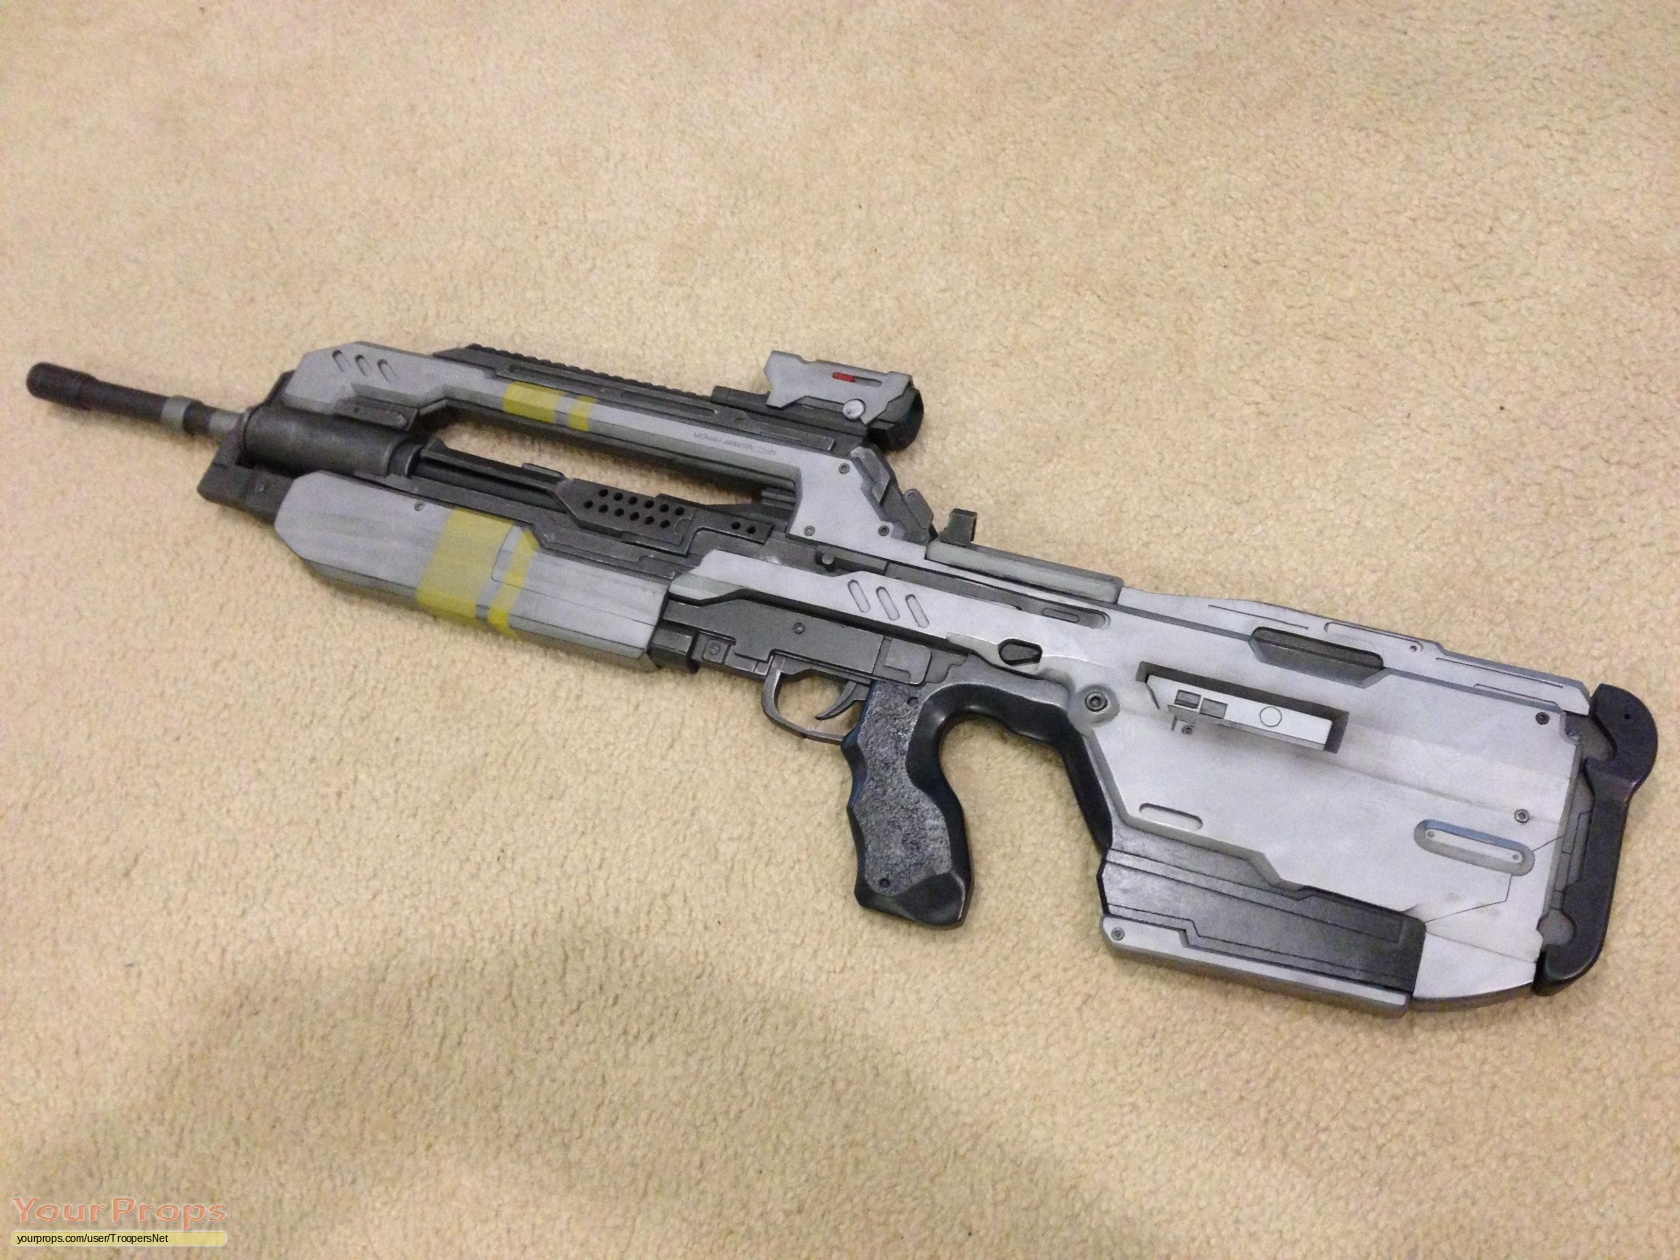 Halo 4 Video Game Br85hb Battle Rifle Replica Prop Weapon